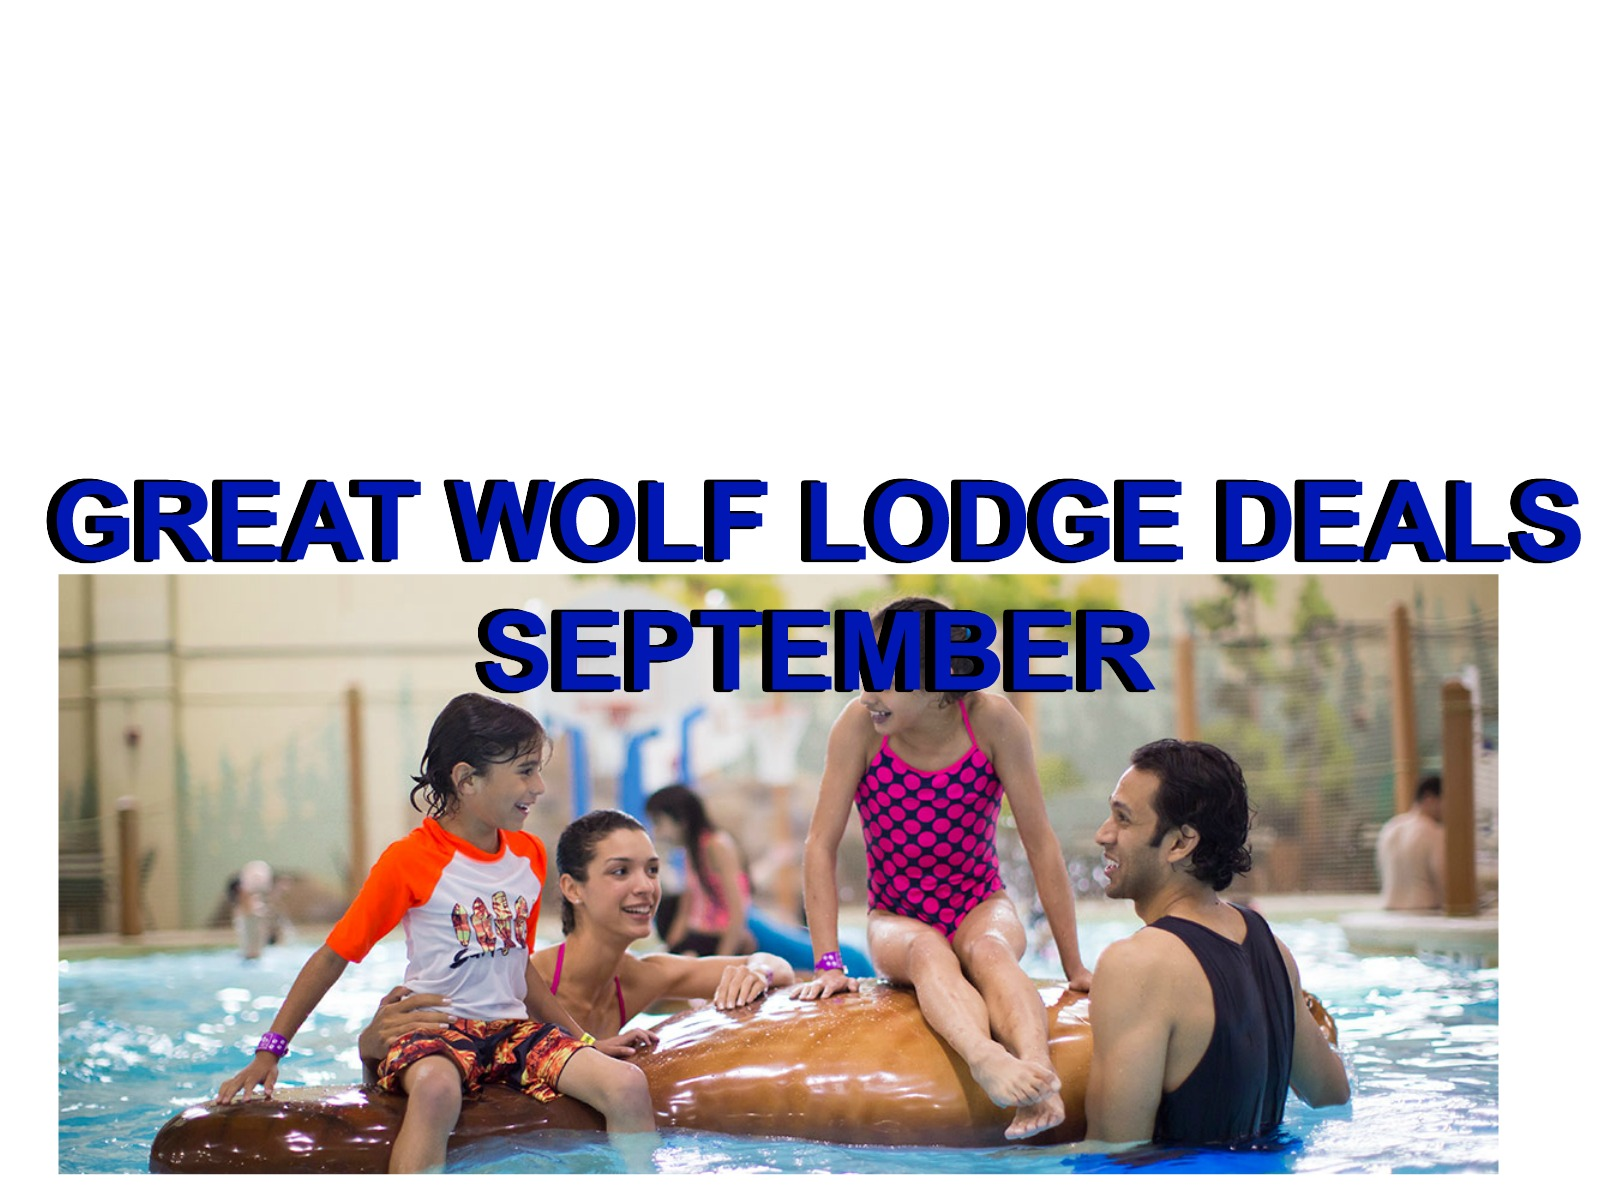 SEPTEMBER GREAT WOLF LODGE DEALS!